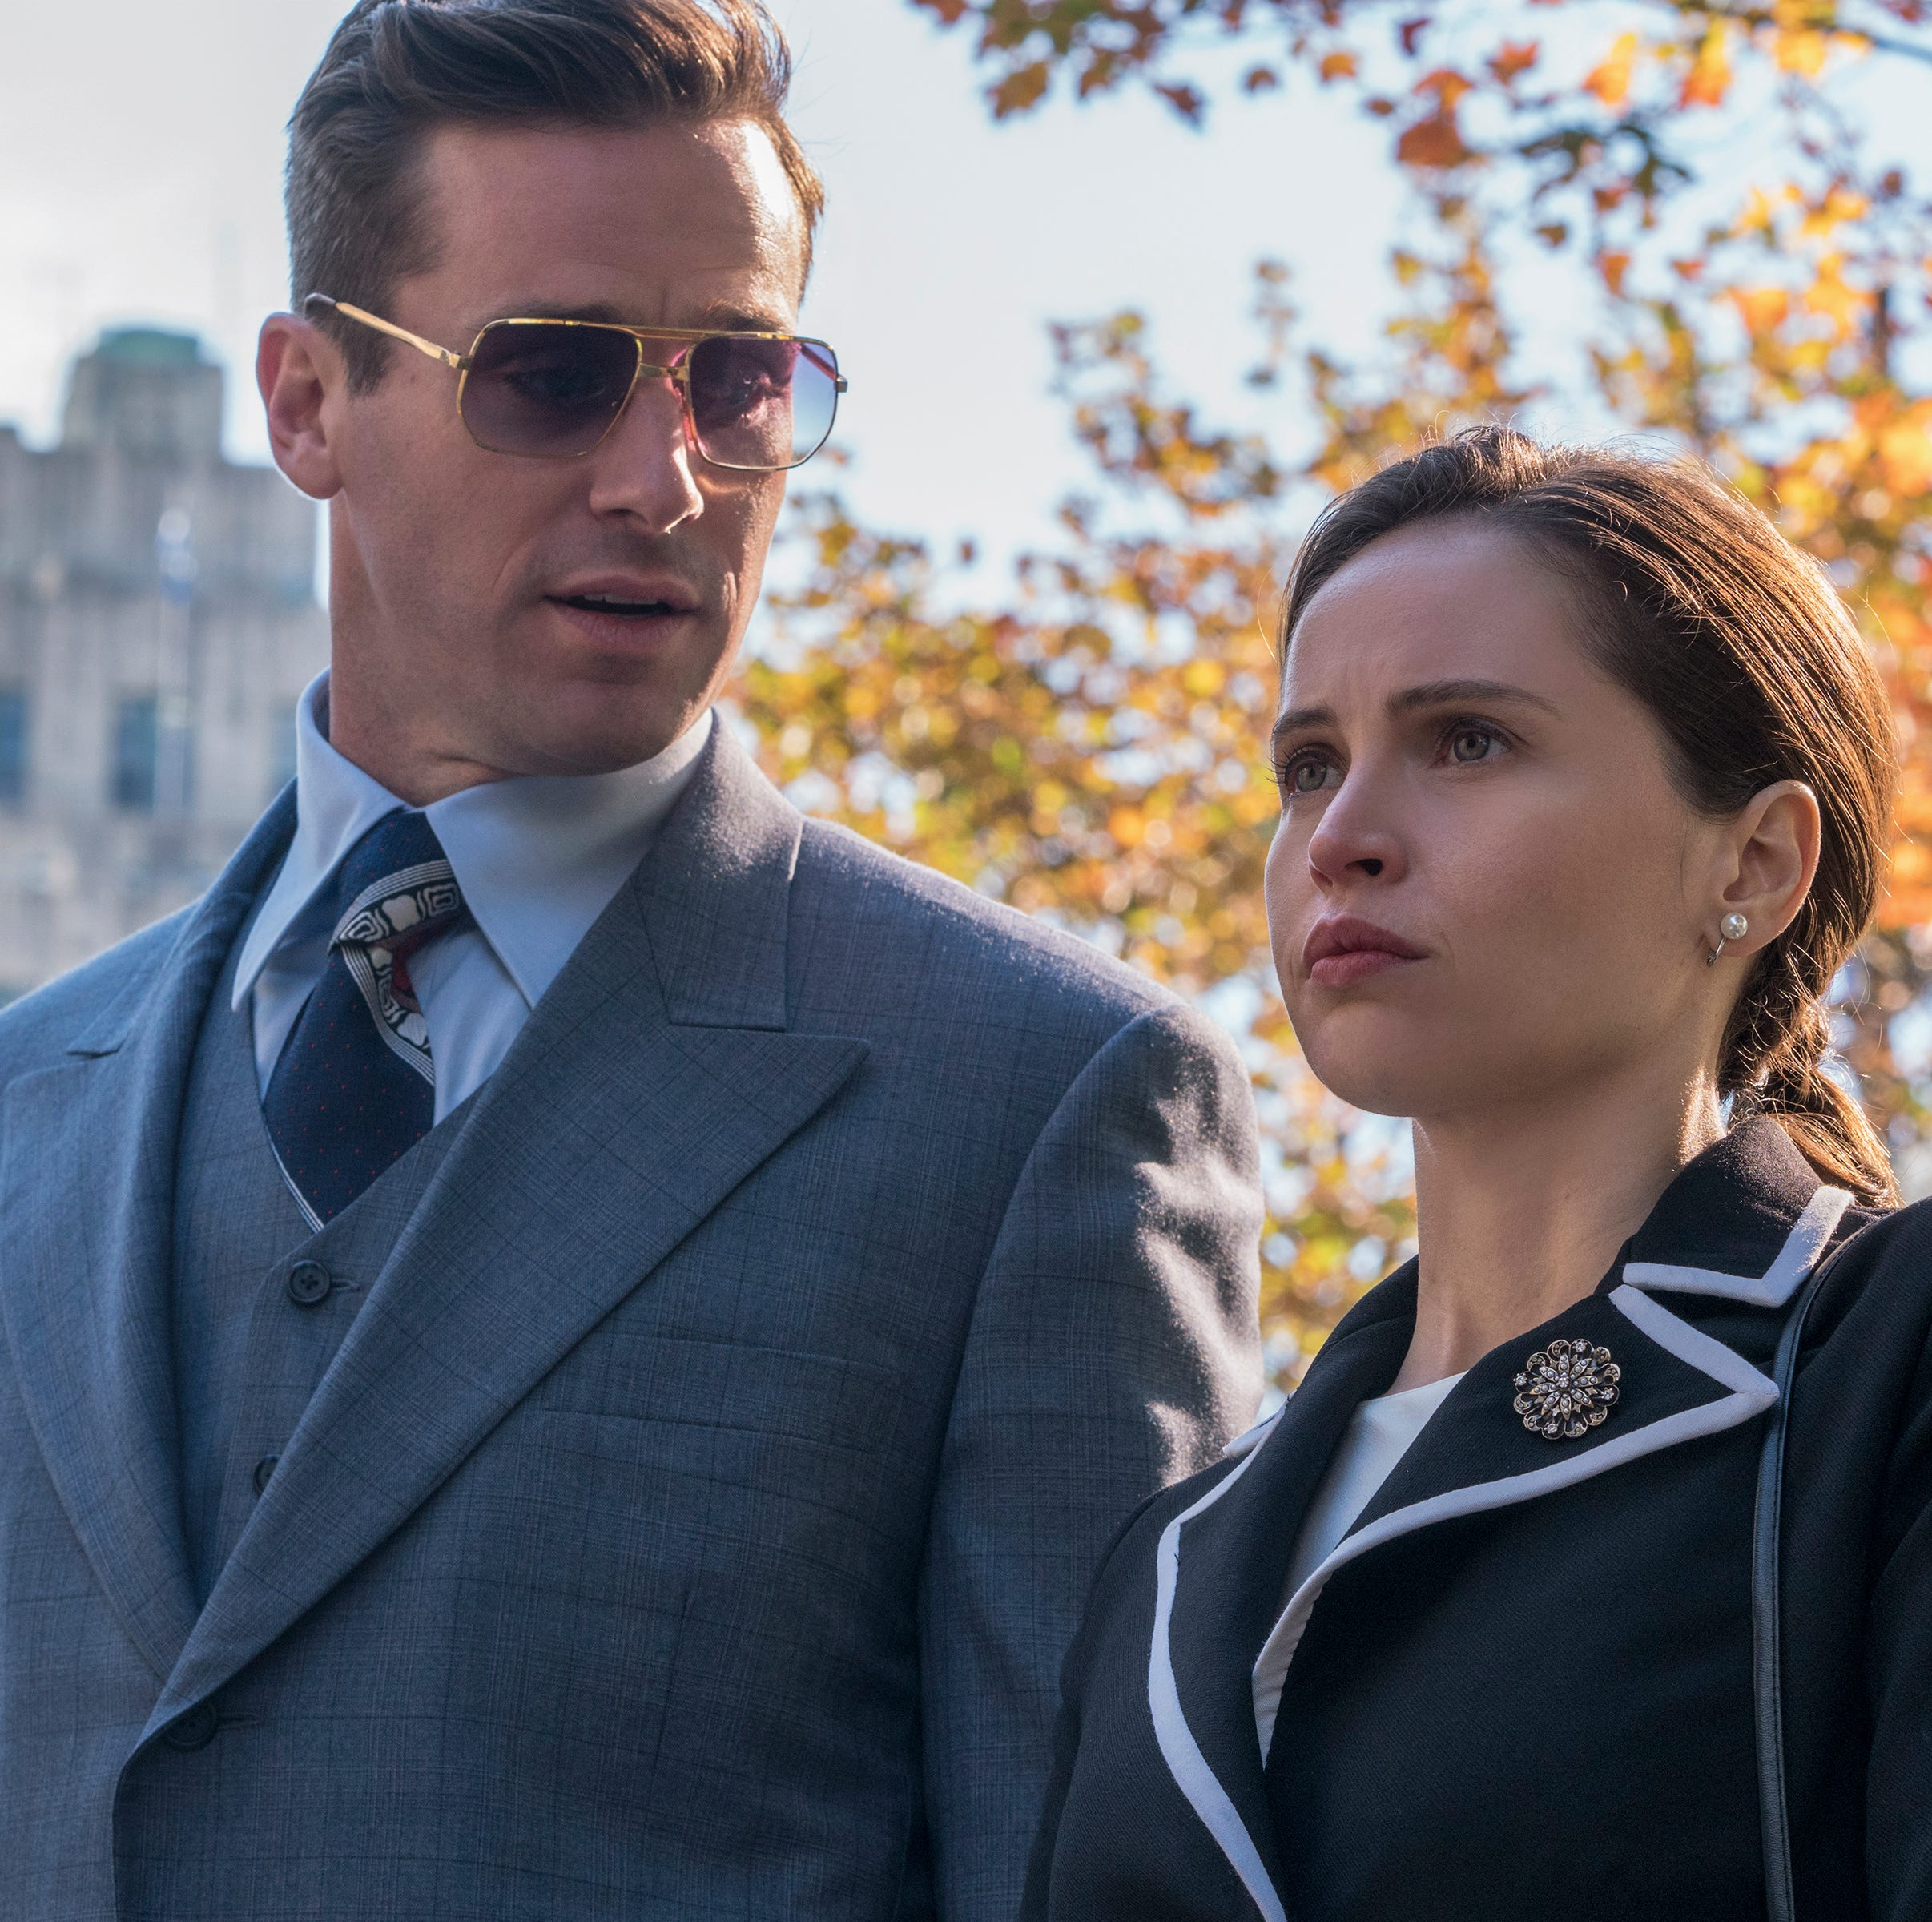 'On the Basis of Sex' review: Little more than inspirational cliches in Ginsburg biopic